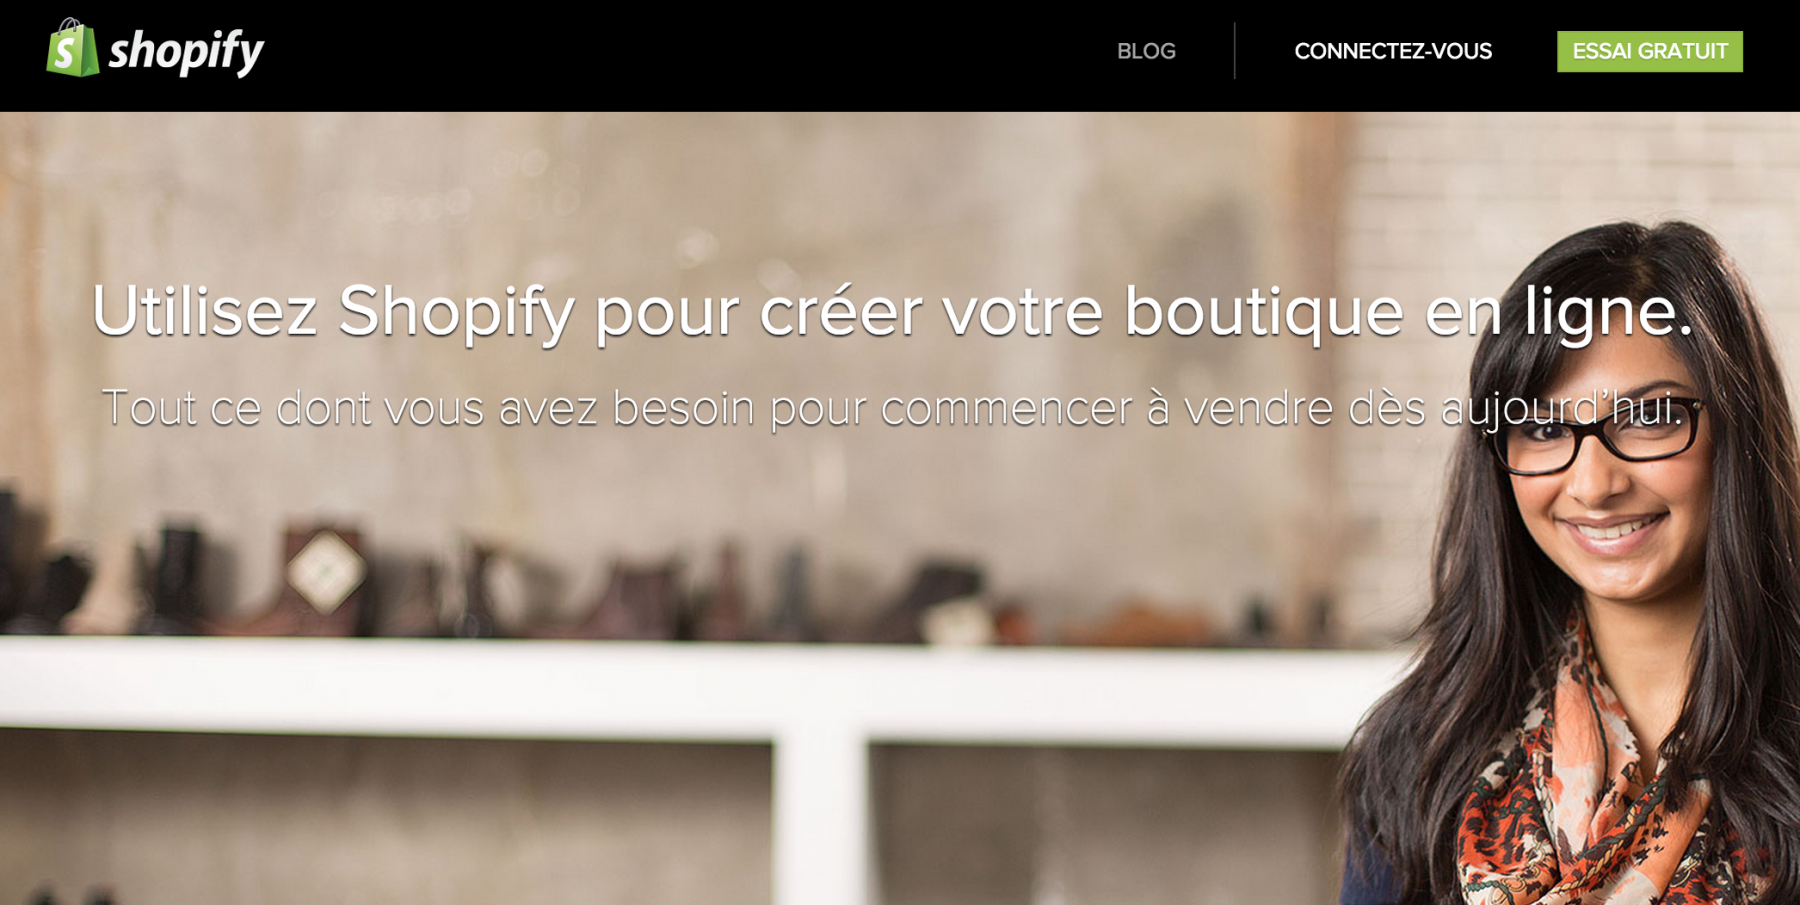 Shopify french marketing website